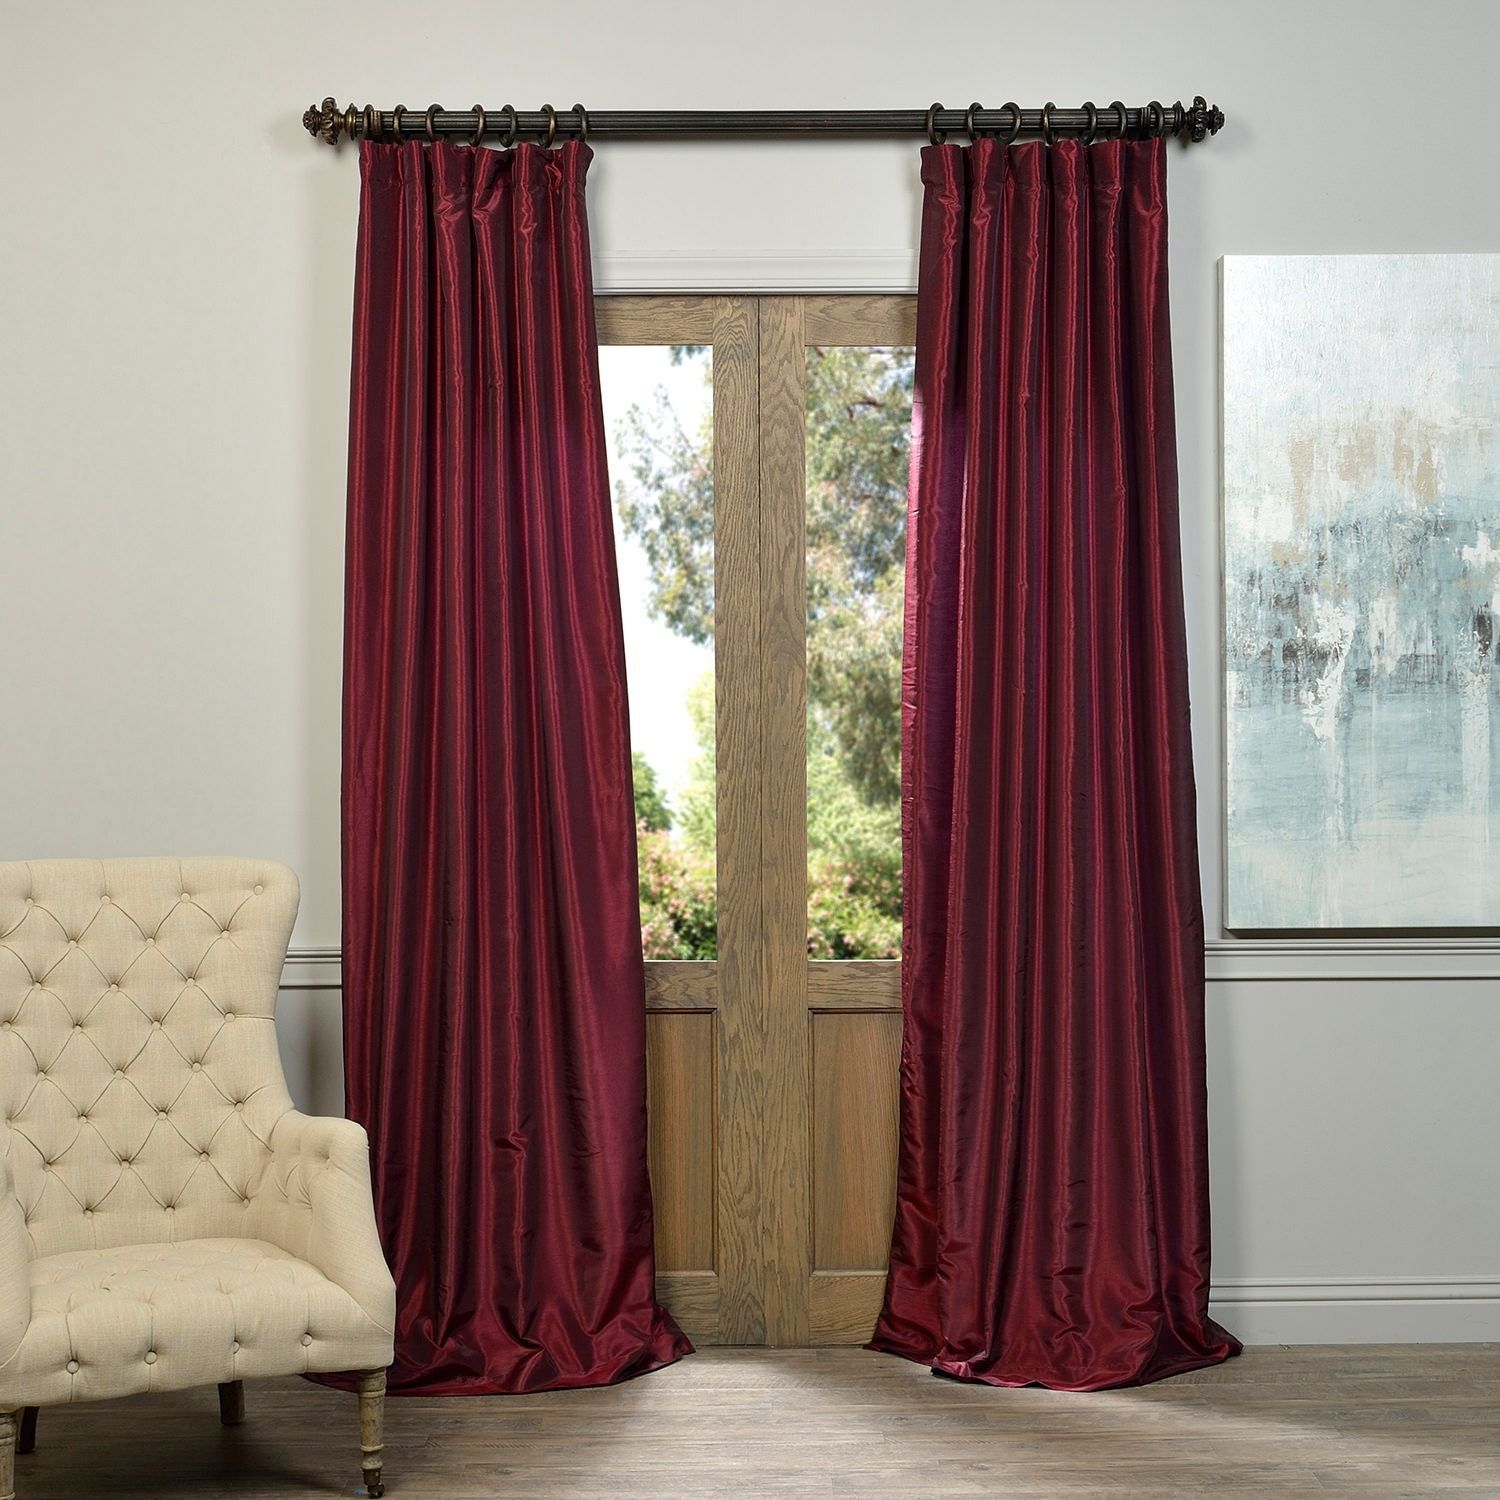 Eff Ruby Vintage Faux Textured Dupioni Silk Curtain Panel 96 Inch